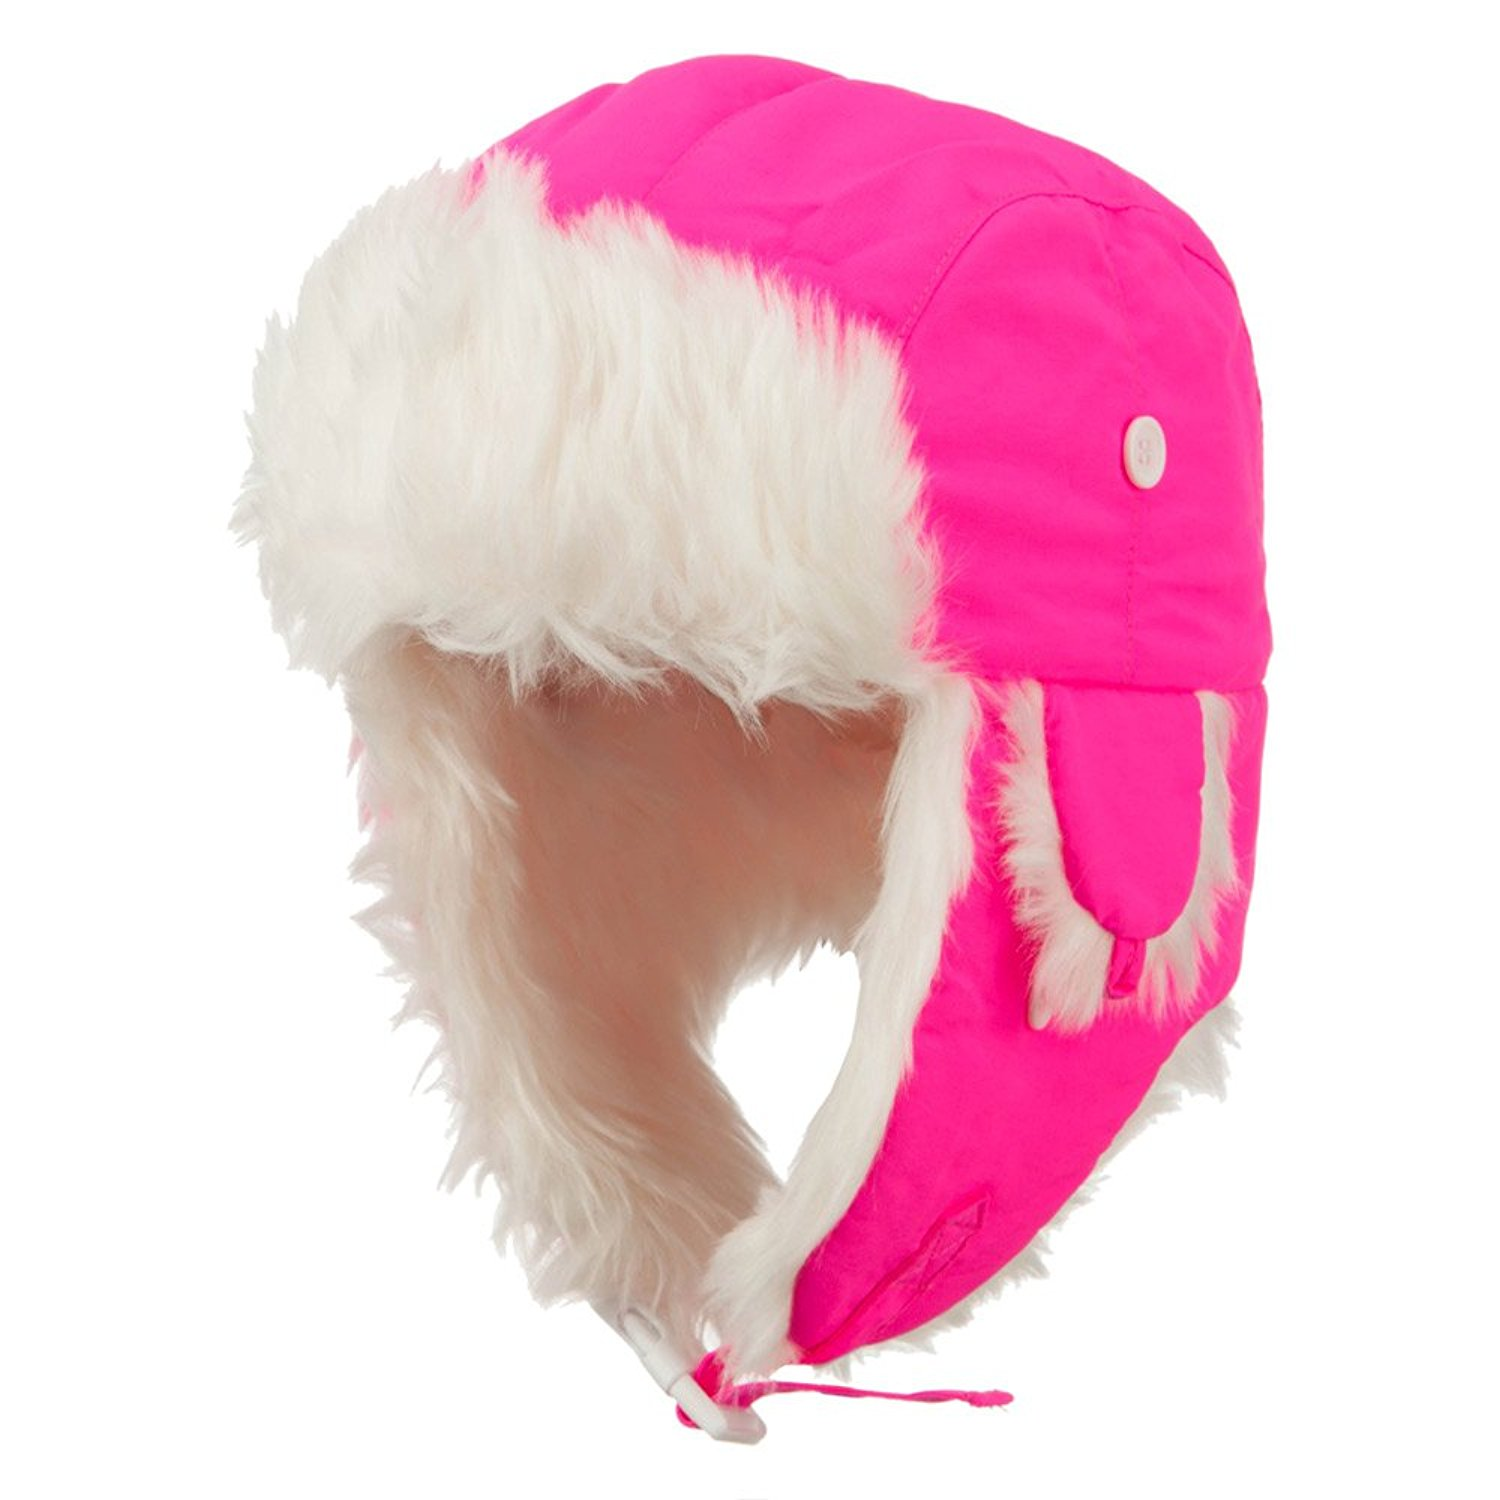 961013fc2e0 Get Quotations · Neon Faux Fur Aviator Trooper Hat - Neon Pink